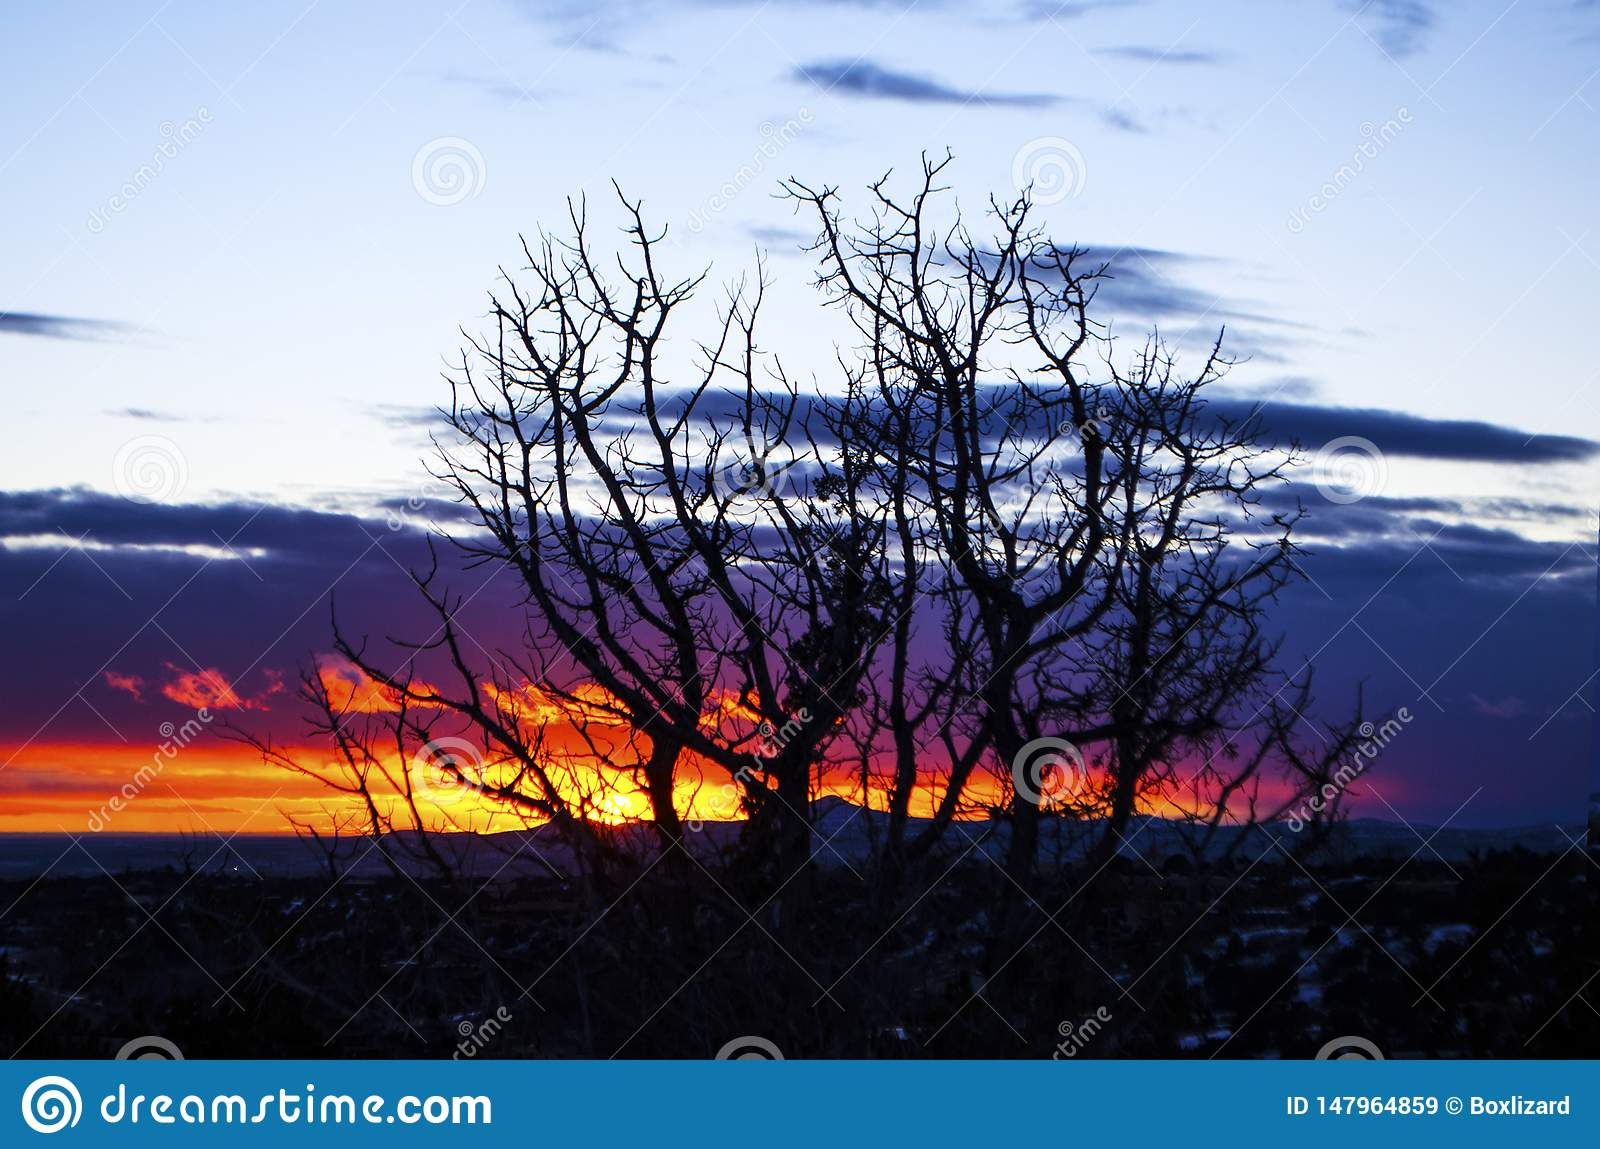 Trees silhouetted against a southwest sunset